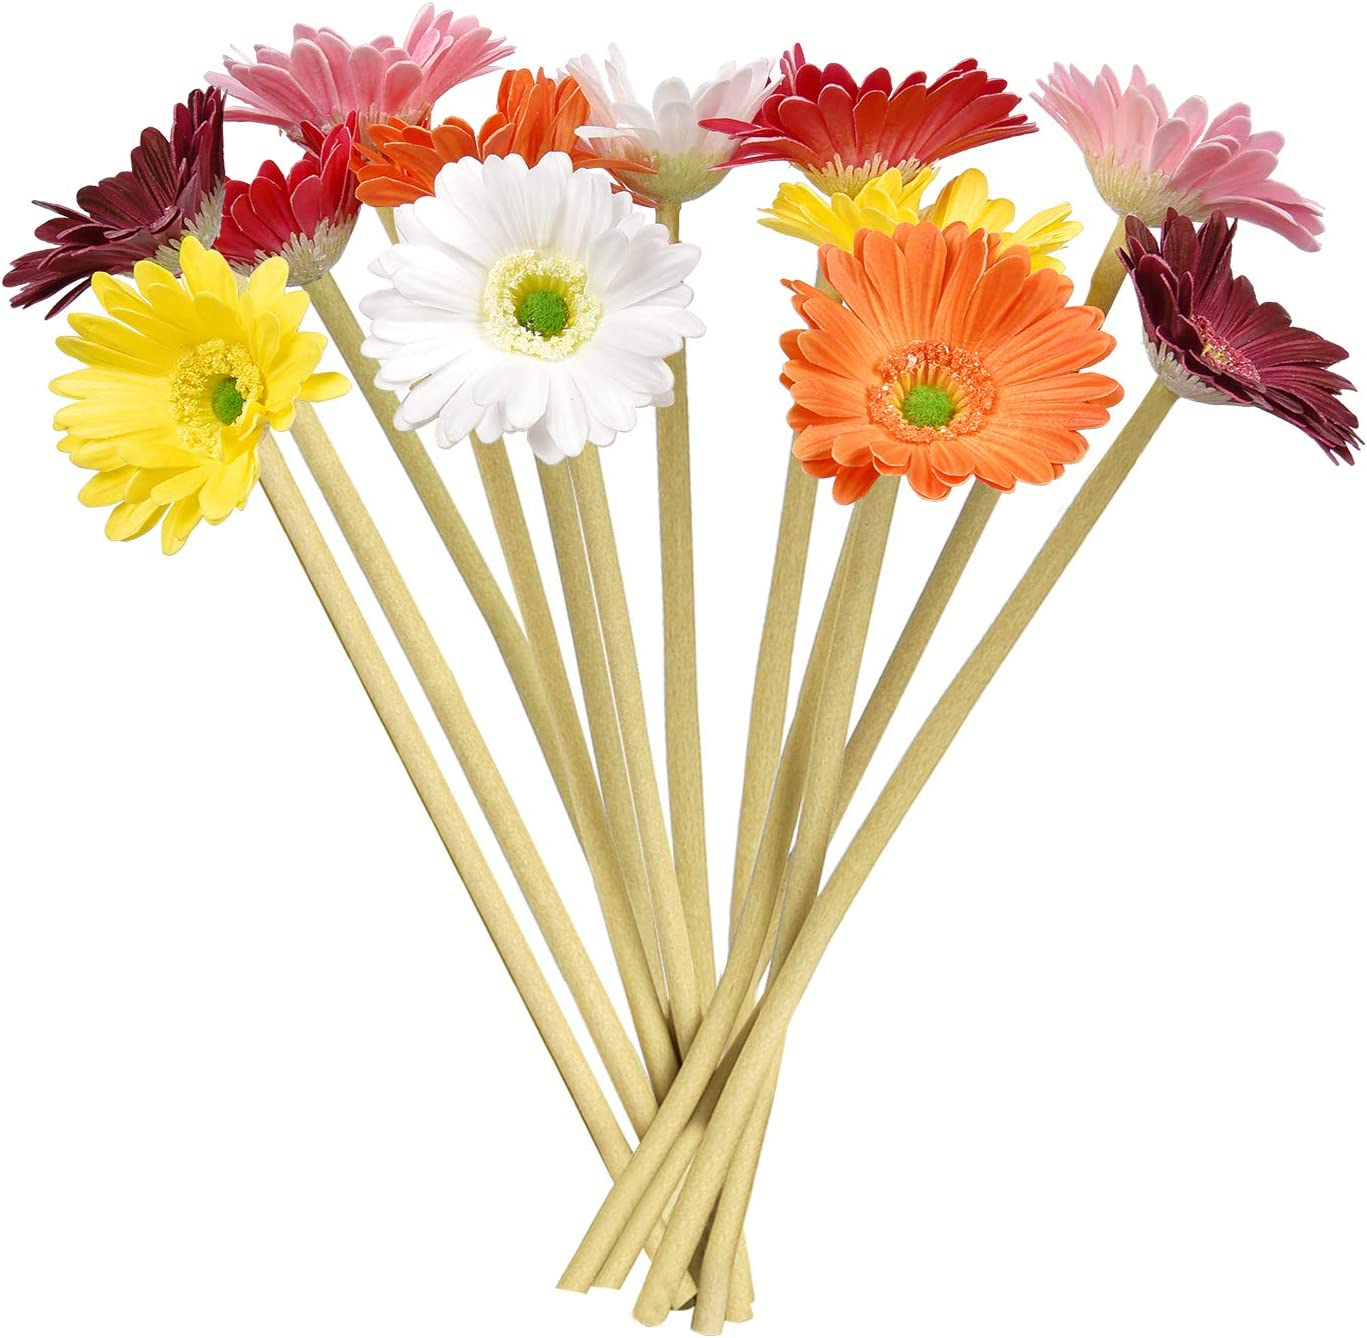 "Martine Mall 12pcs Multi Color Artificial Daisy Bouquet 12.6"" Tall Fake Daisy Stems Multicolor Daisy Flower Bulk Gerbera Daisy Flower for Party Home Kitchen Garden Wedding Decorations"